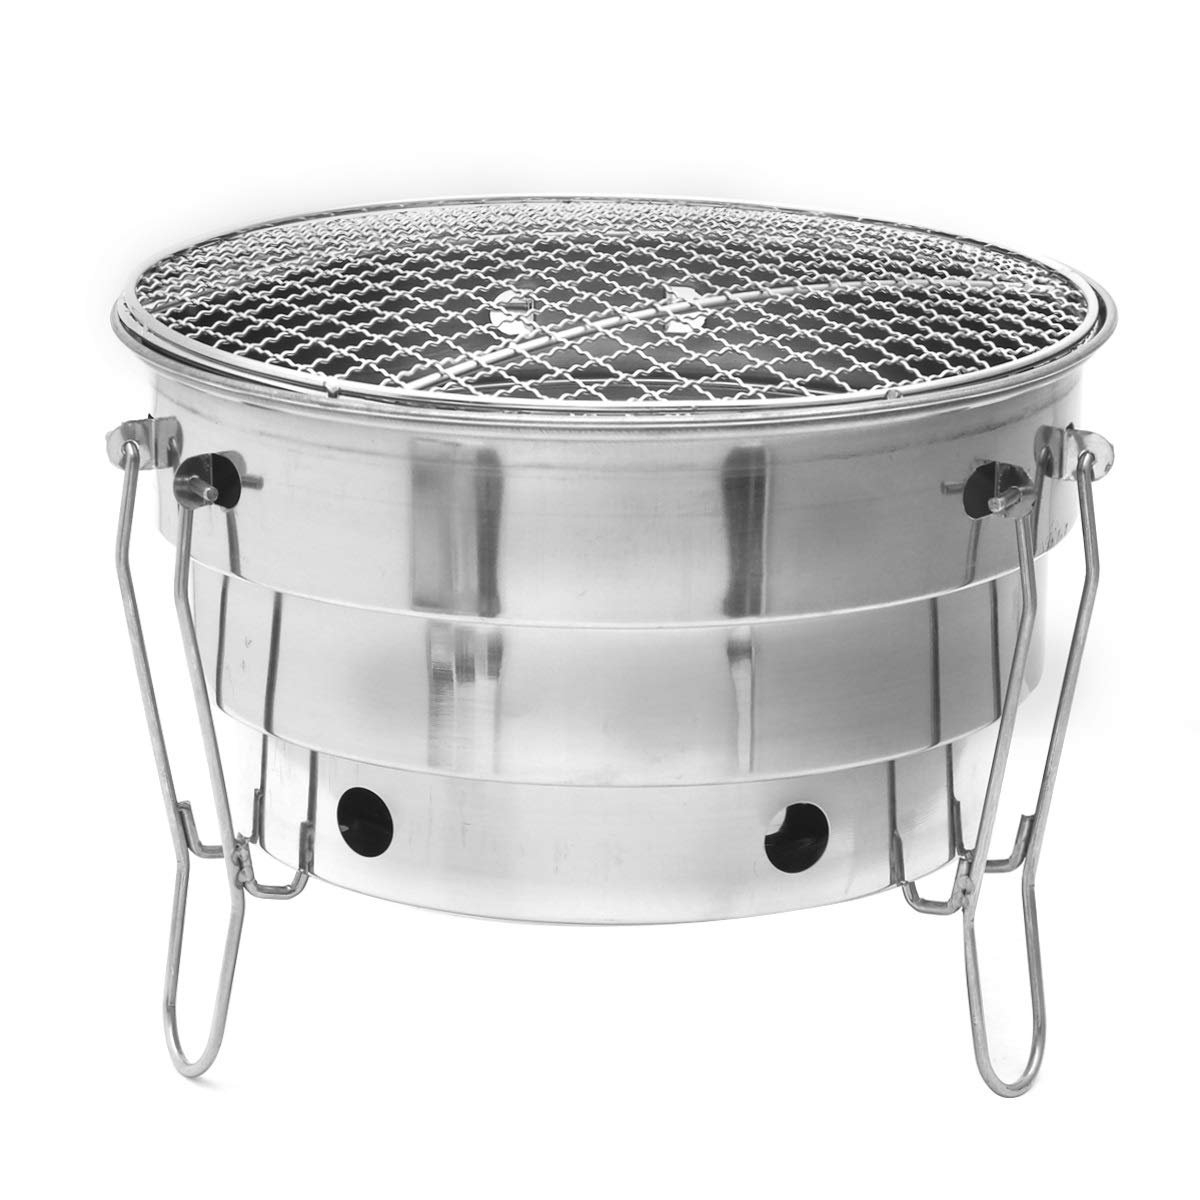 Stainless Steel BBQ Charcoal Grill Foldable Portable Cooking Outdoor Camping Burner Home Courtyard Furnace Family Reunion